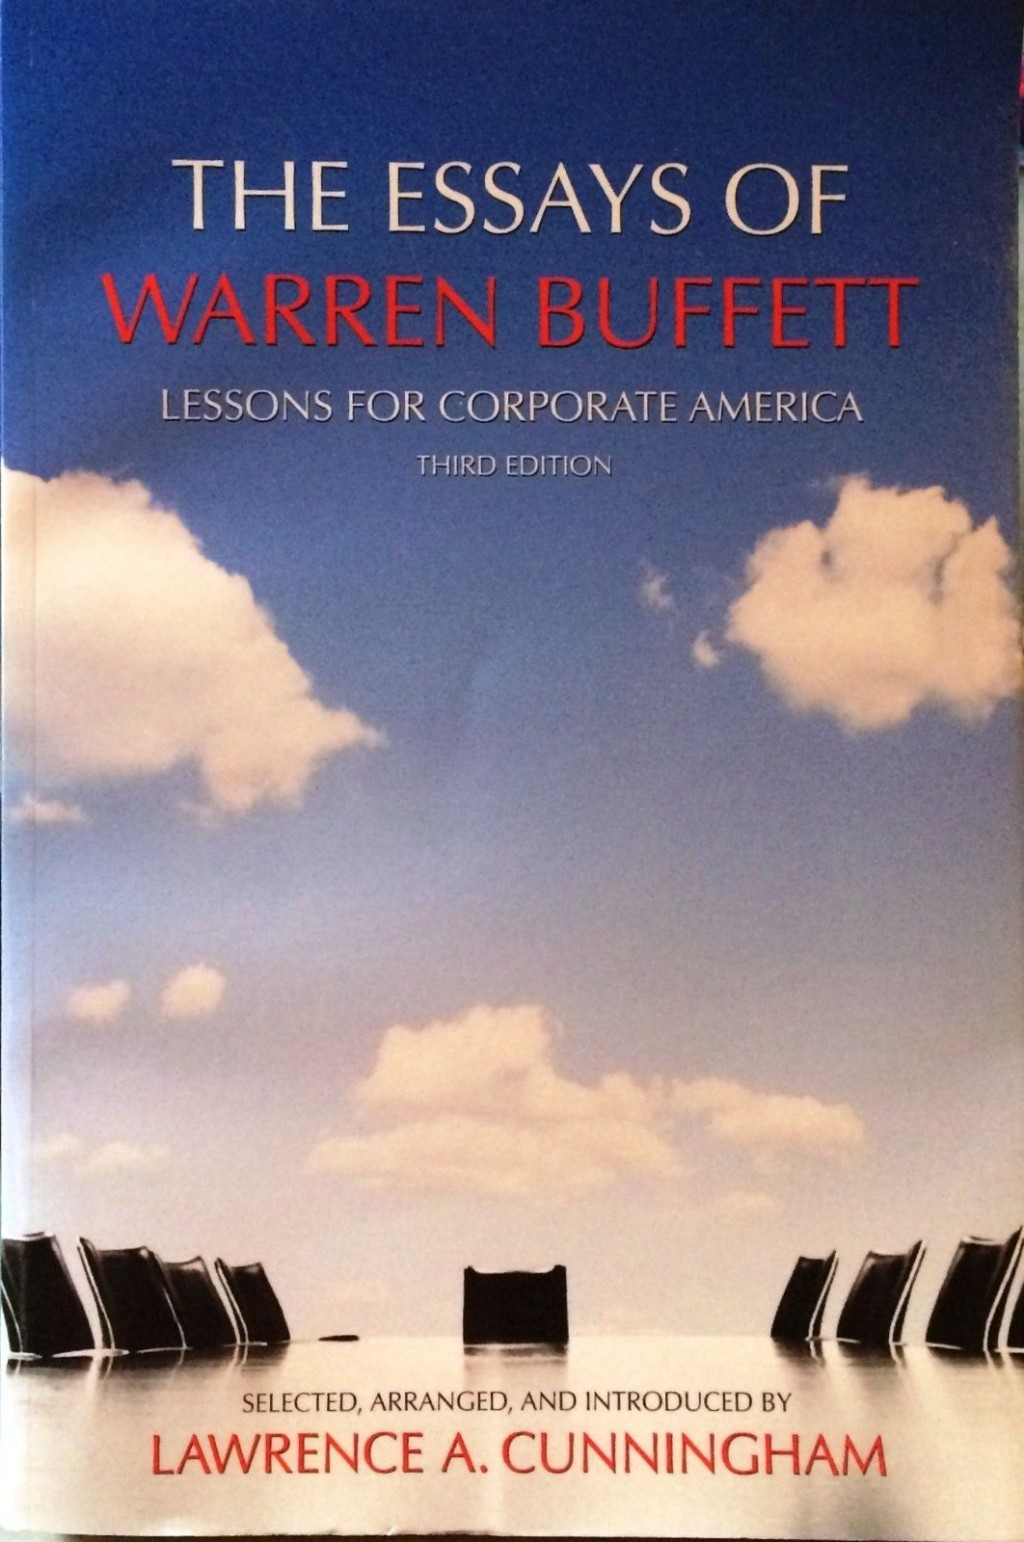 014 S L1600 Essay Example The Essays Of Warren Buffett Lessons For Corporate Remarkable America Third Edition 3rd Second Pdf Audio Book Large